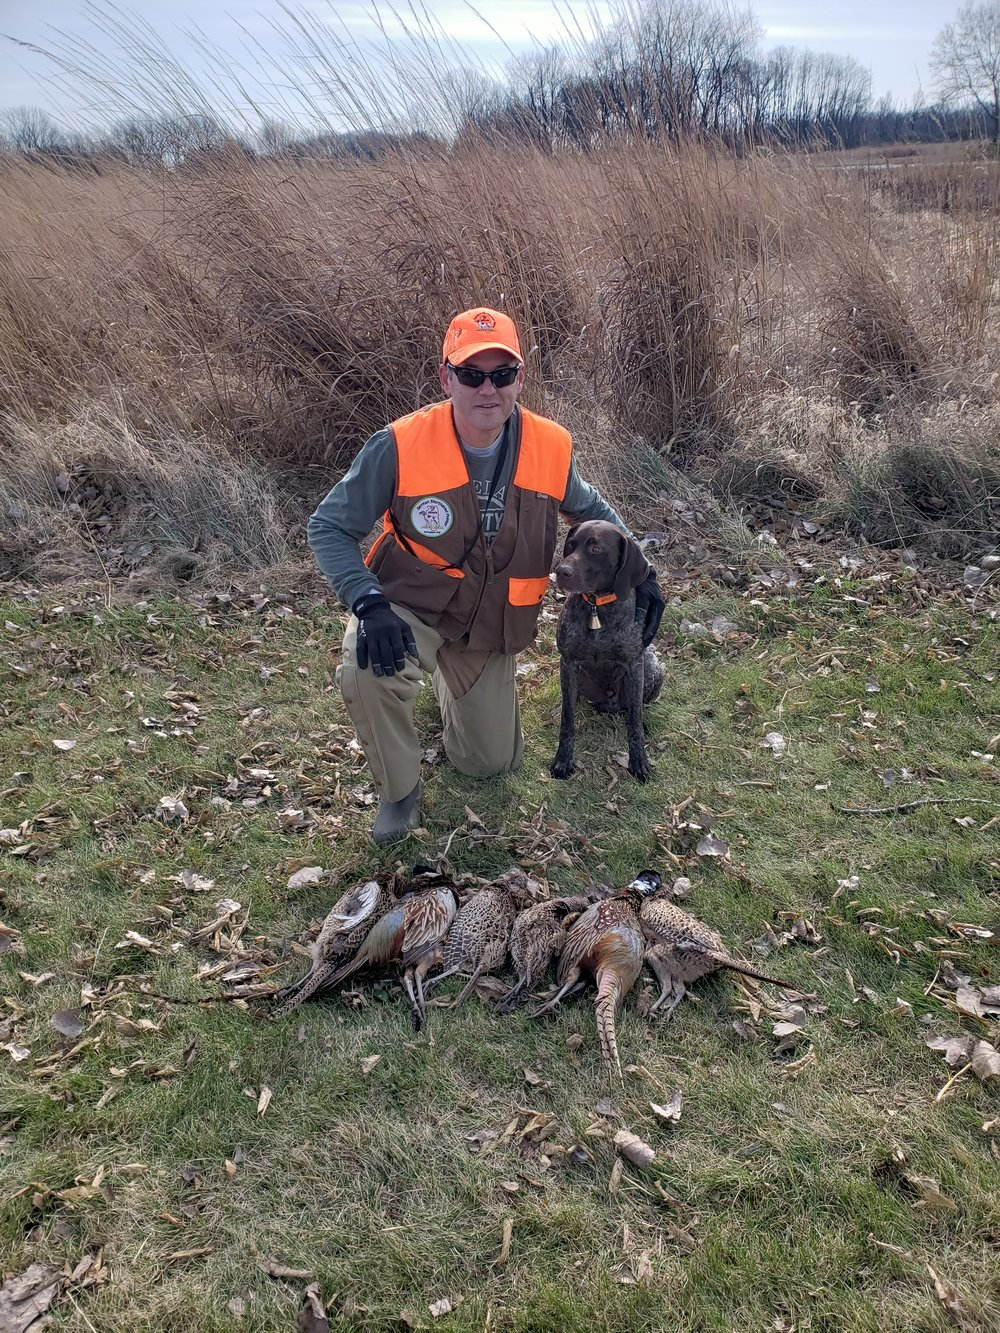 Ivan with his dog Ronnie and 3 man limit of pheasants